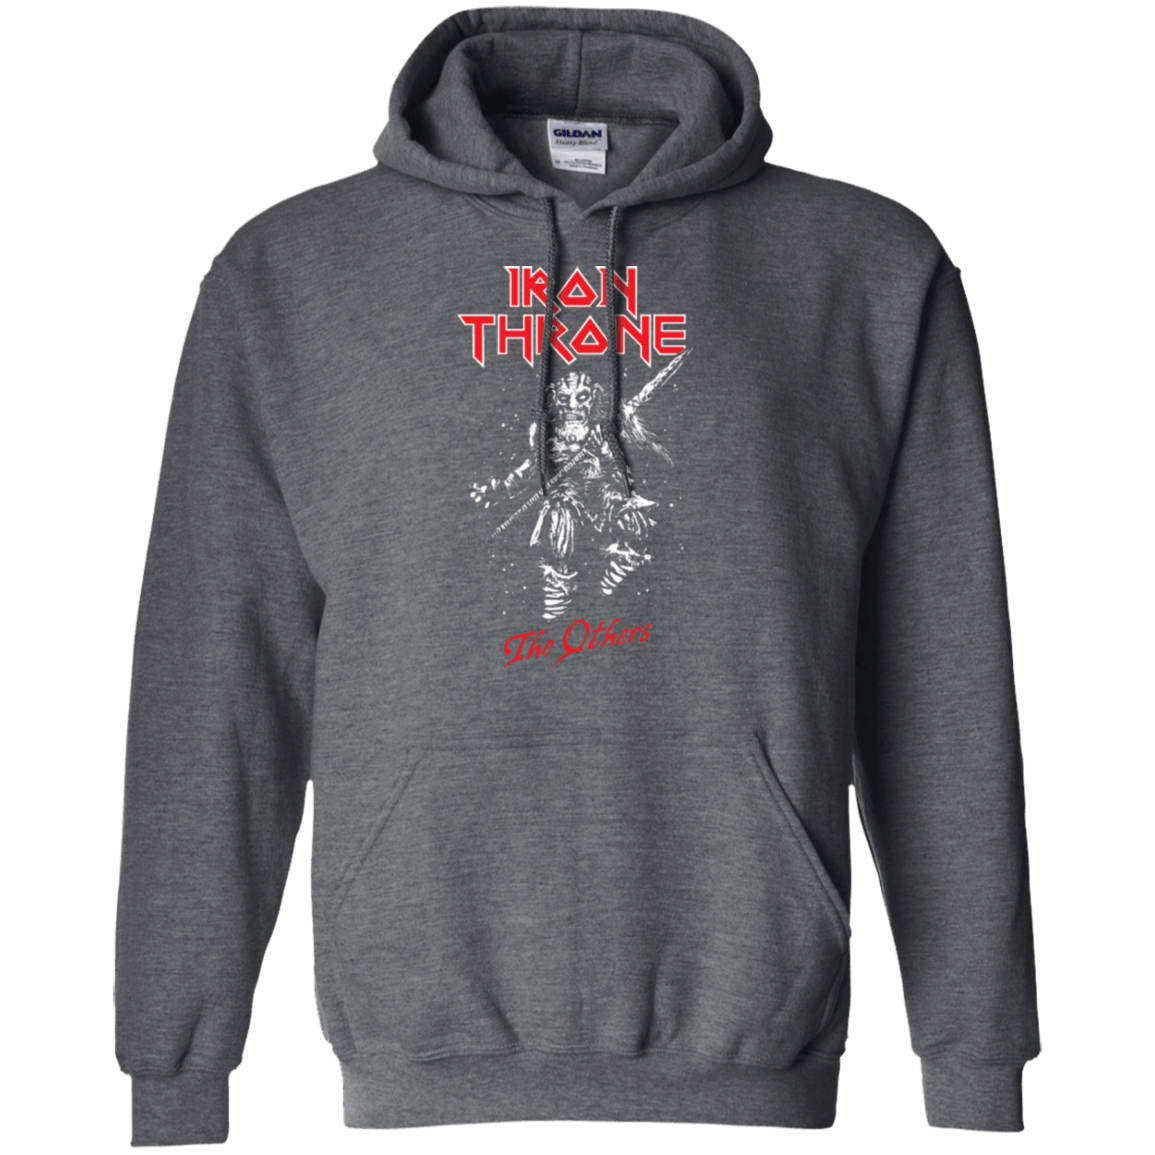 Sweatshirts Dark Heather / Small Iron Throne Pullover Hoodie